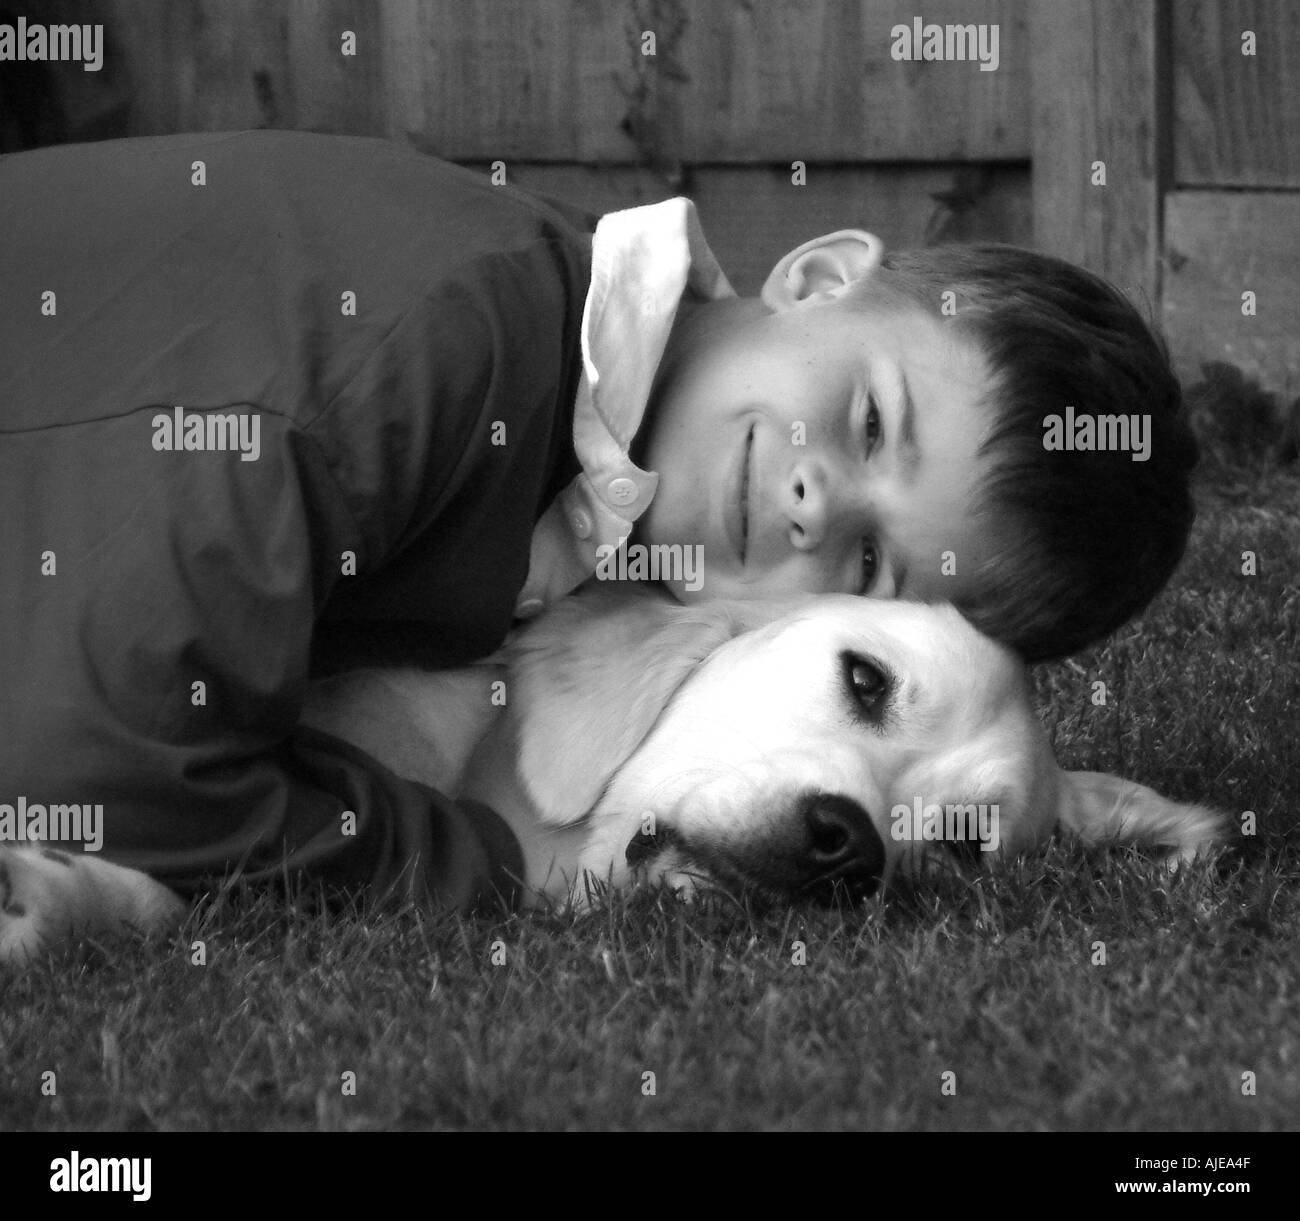 boy cuddling golden retriever dog - Stock Image